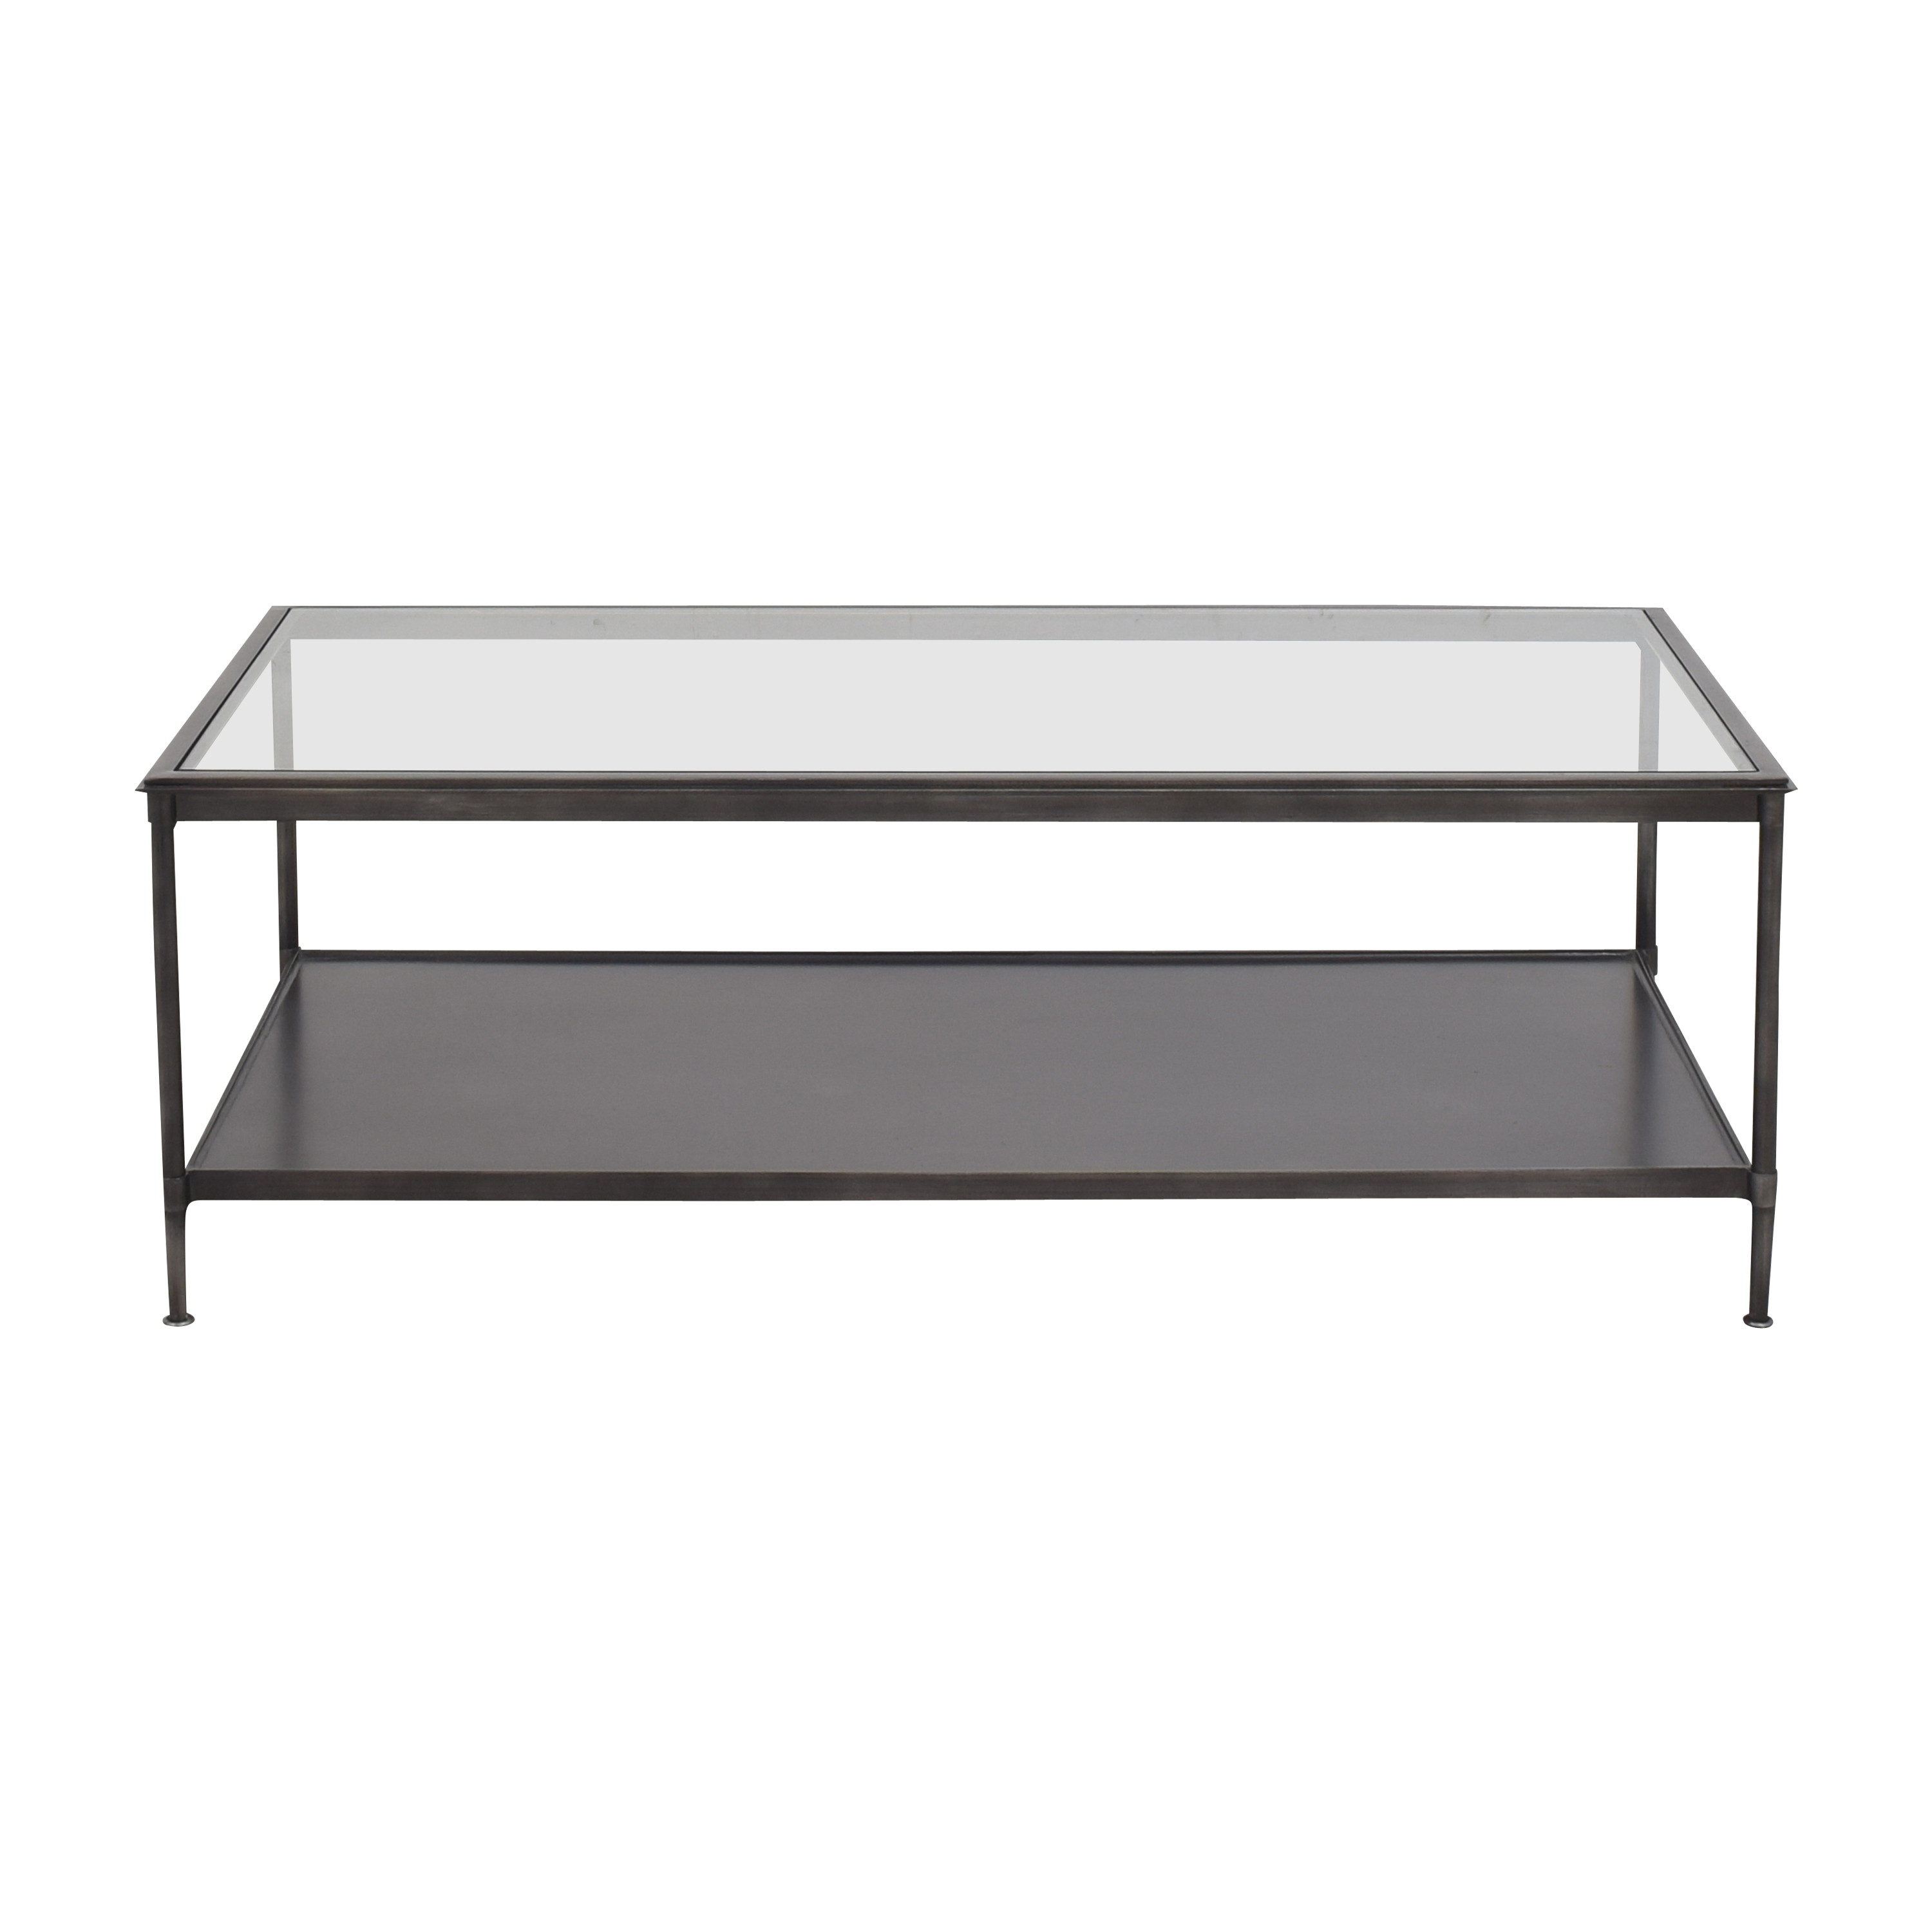 shop Crate & Barrel Kyra Coffee Table  Coffee Tables